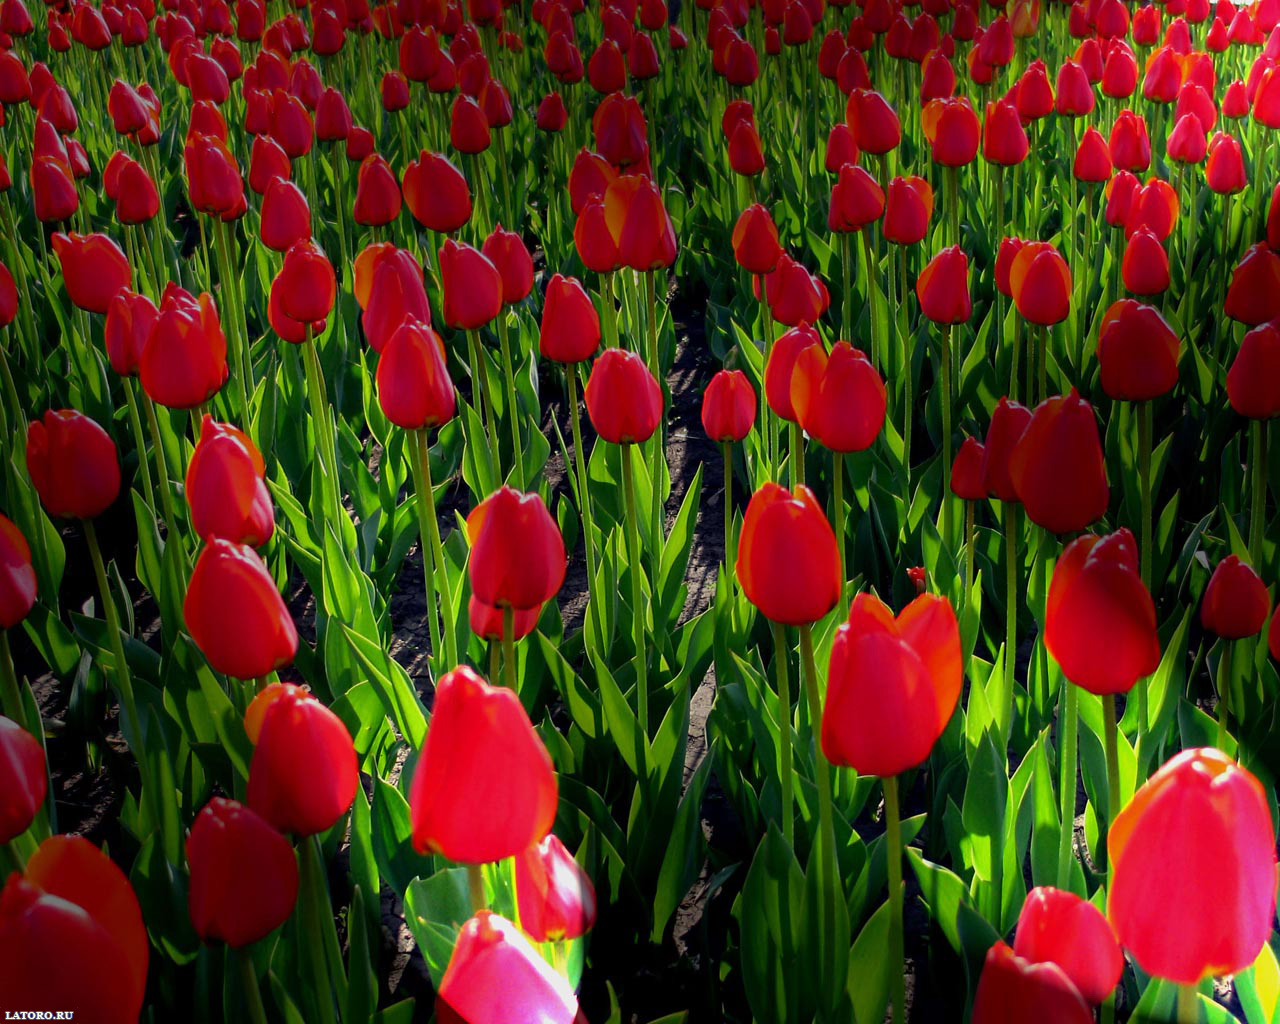 Flowers Desktop Wallpapers FREE on Latorocom 1280x1024